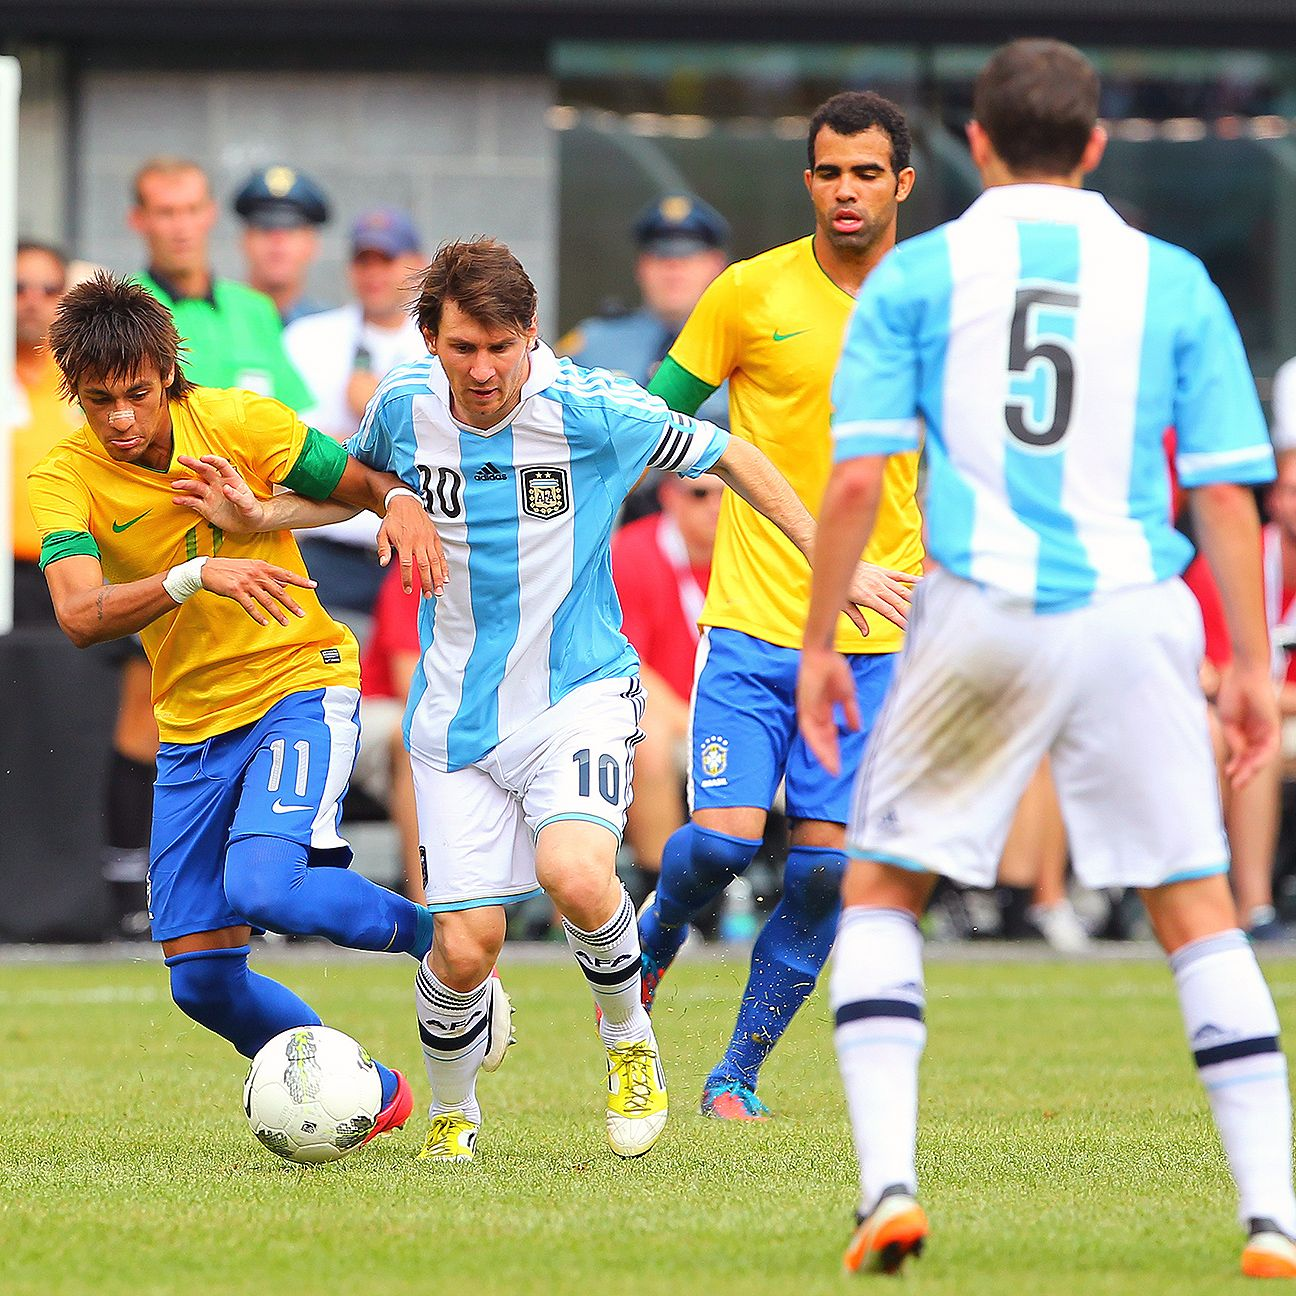 Lionel Messi and Argentina downed Neymar's Brazil in a 4-3 thriller played in June 2012 in the United States.